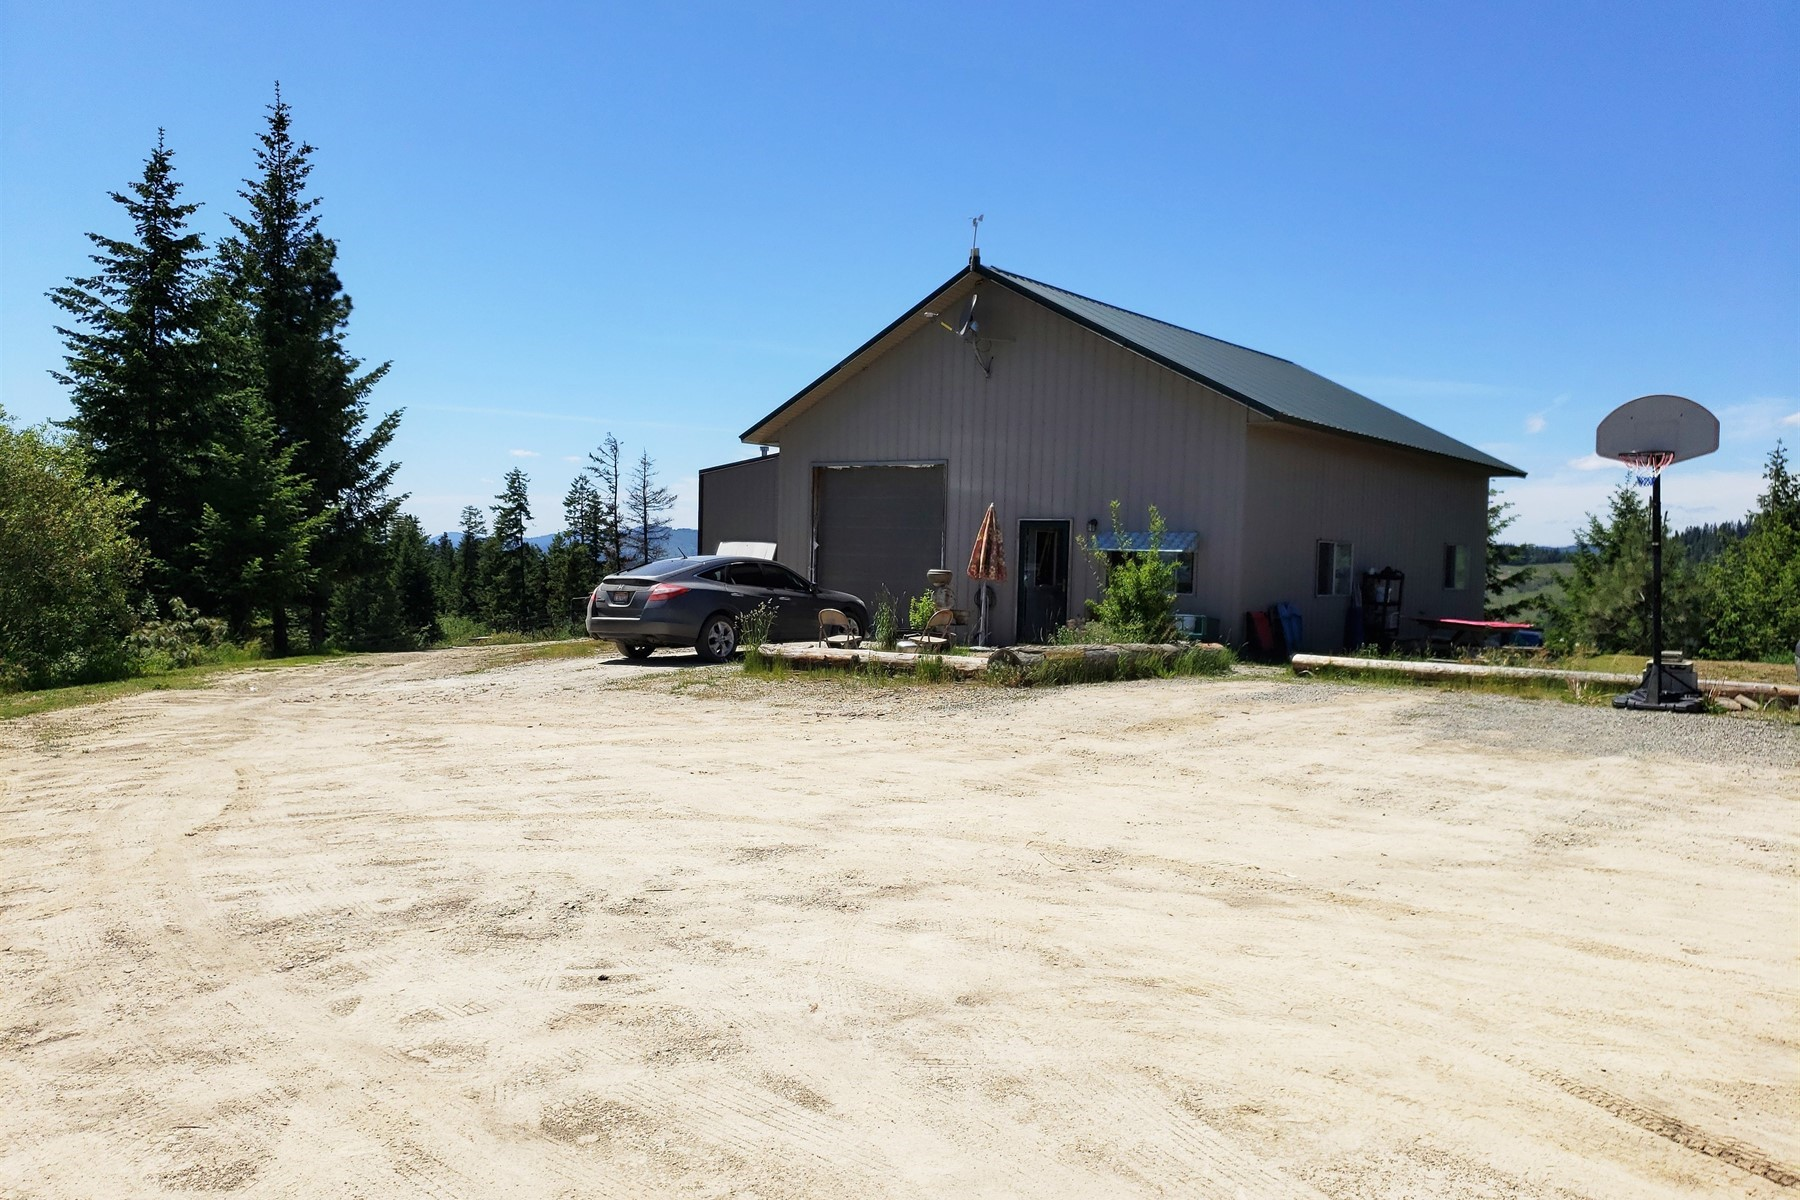 Single Family Homes for Active at Thyr Property 9948 S Hardy Creek Rd Cataldo, Idaho 83810 United States